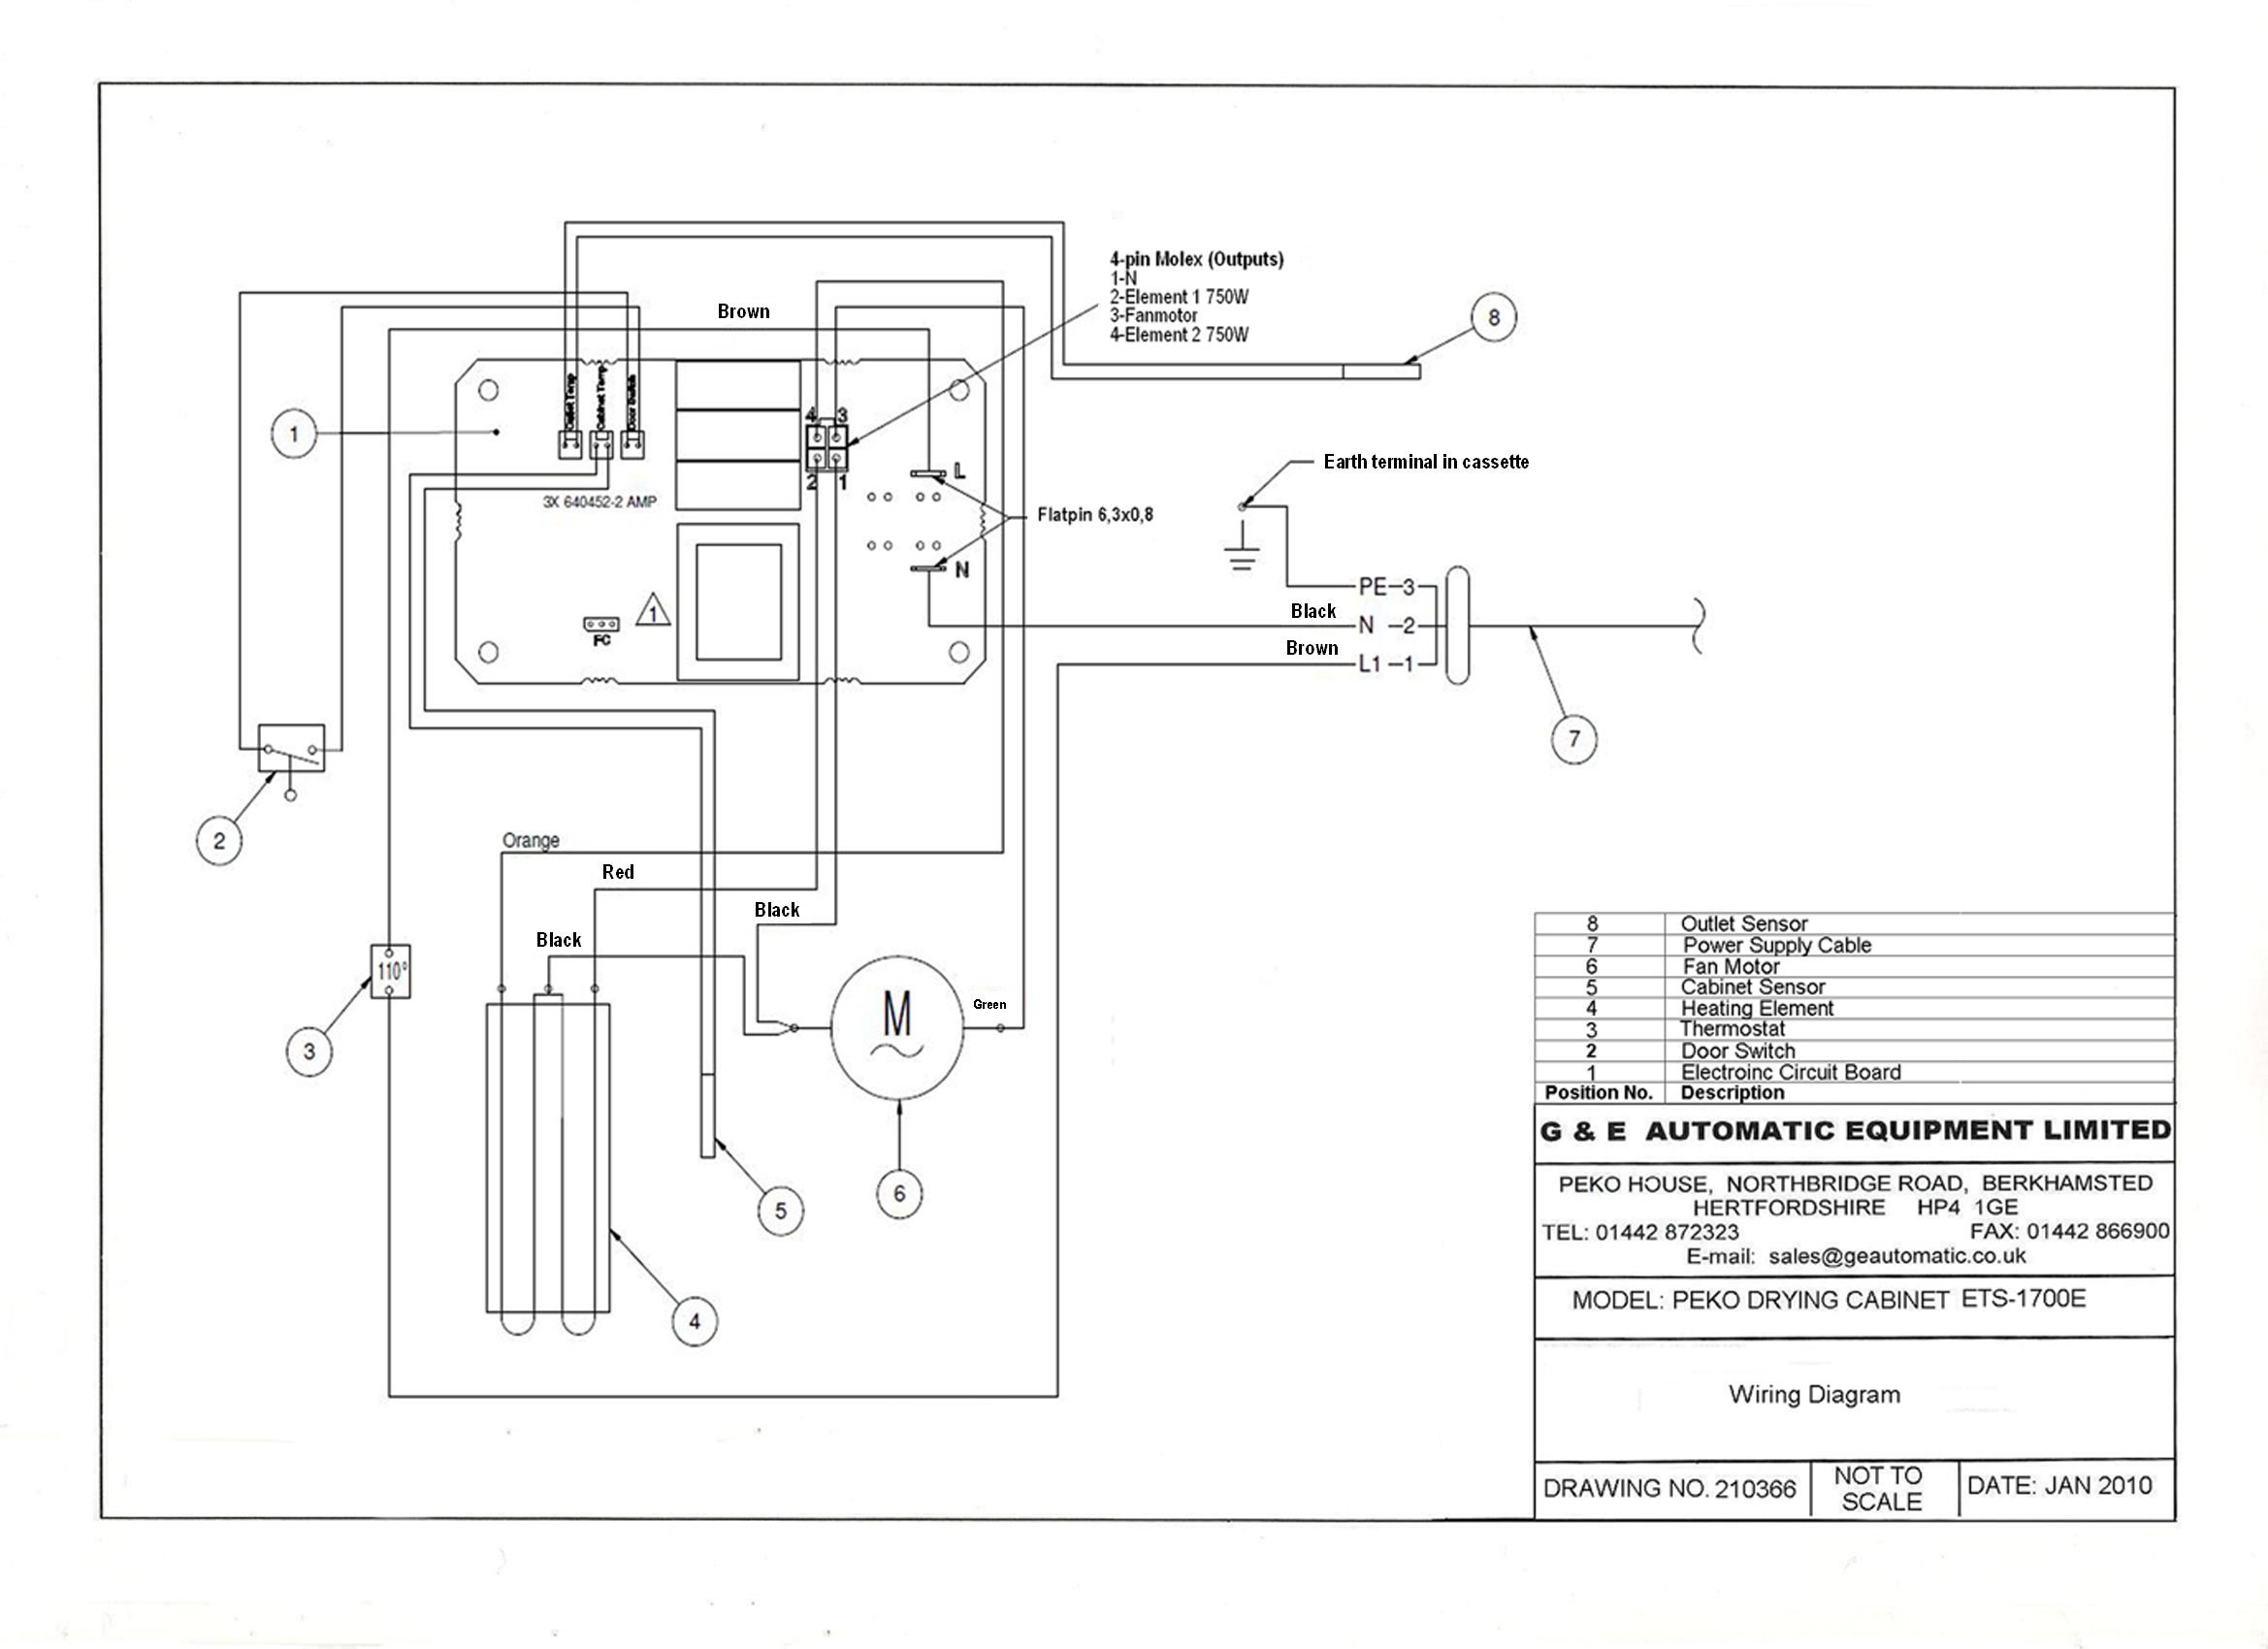 Gear Dryer Wiring Diagram Custom Project Whirlpool Lg5551xtwo Diagrams Peko Drying Cabinets Rh Pekodryingcabinets Co Uk